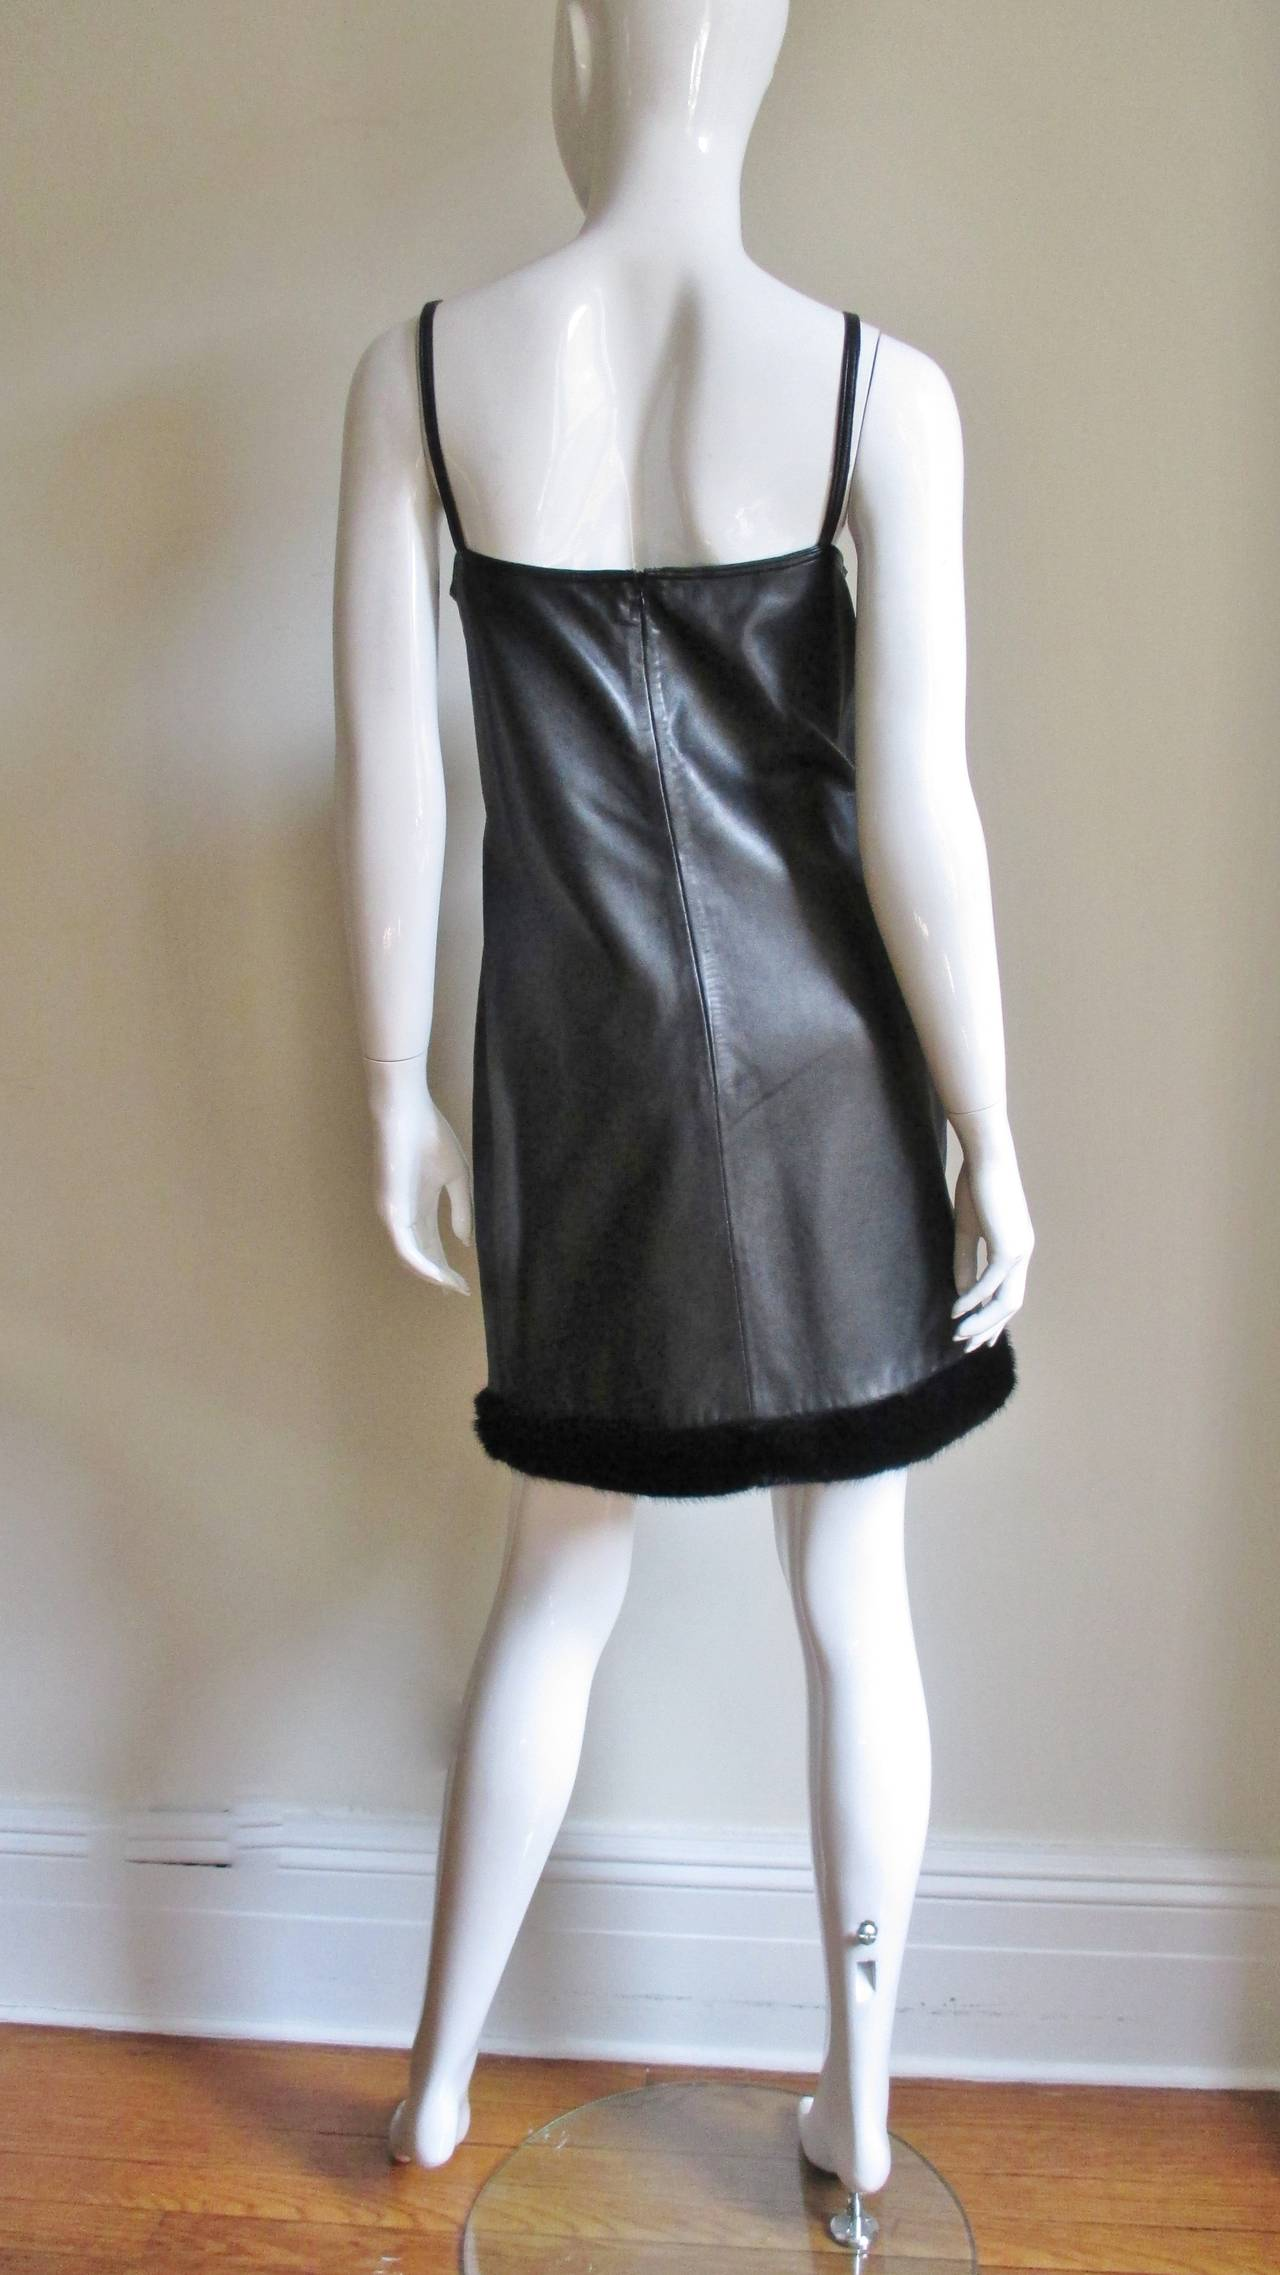 Vintage Gianni Versace Leather Dress with Mink Trim 9